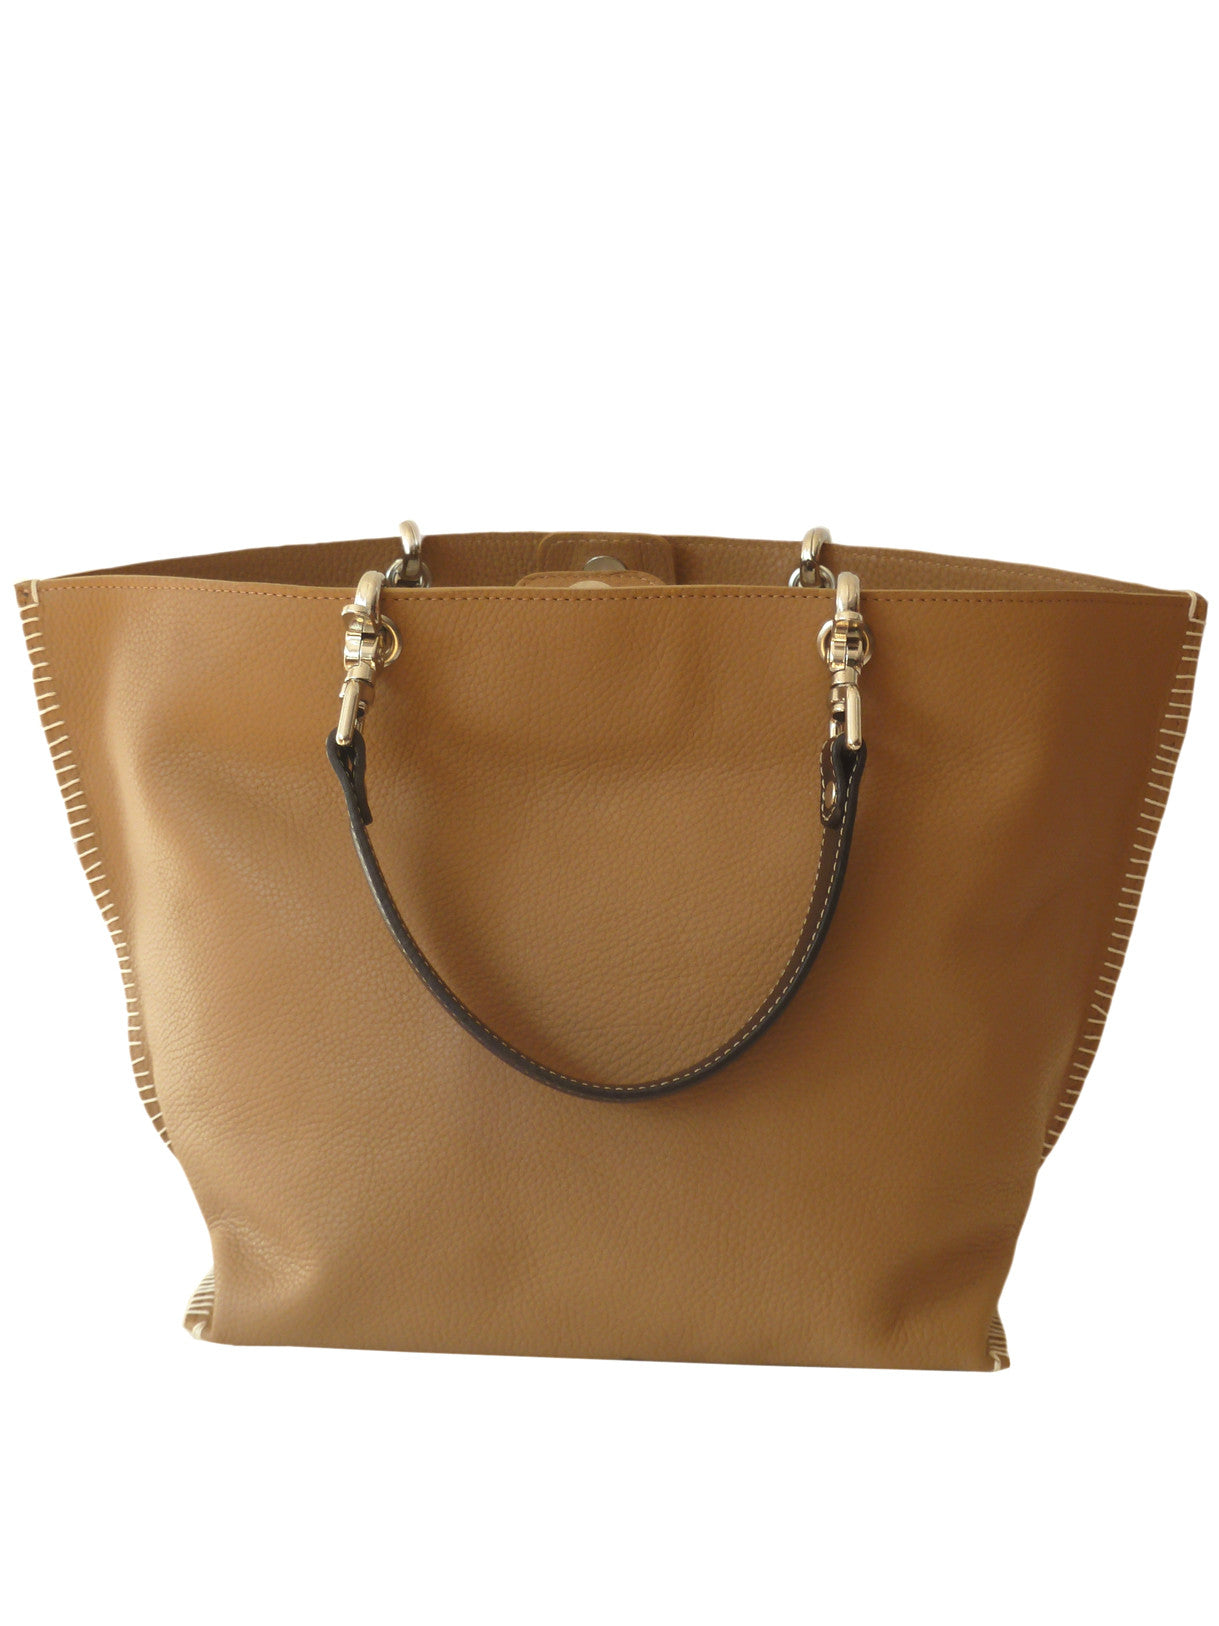 Gamidi 2 Tote Pebble Grain Leather Elephant Grey